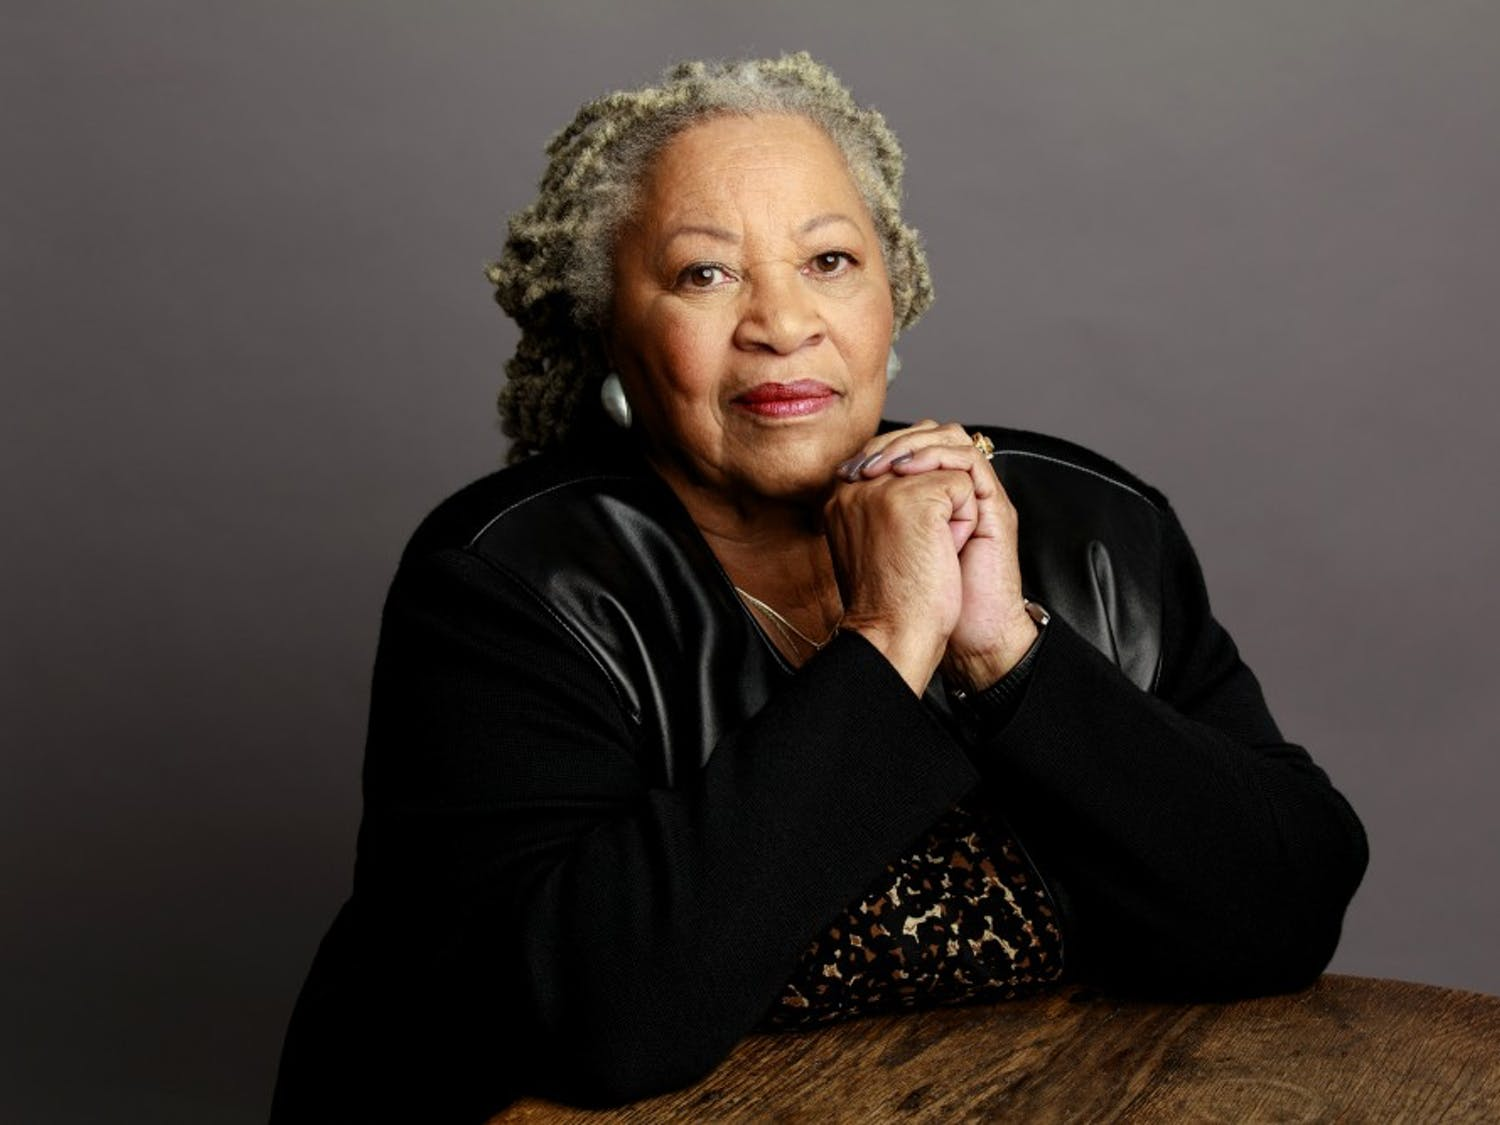 Nobel Prize-winningauthor Toni Morrison took the stage at Kleinhans Thursday evening inanother installment of Just Buffalo Literary Center's 2017-18 BABEL series. Morrison, speaking on the 50th anniversary of Dr. Martin Luther King Jr.'s address in the same venue, discussed her lengthy career and discussed each of her 11 well-read novels.